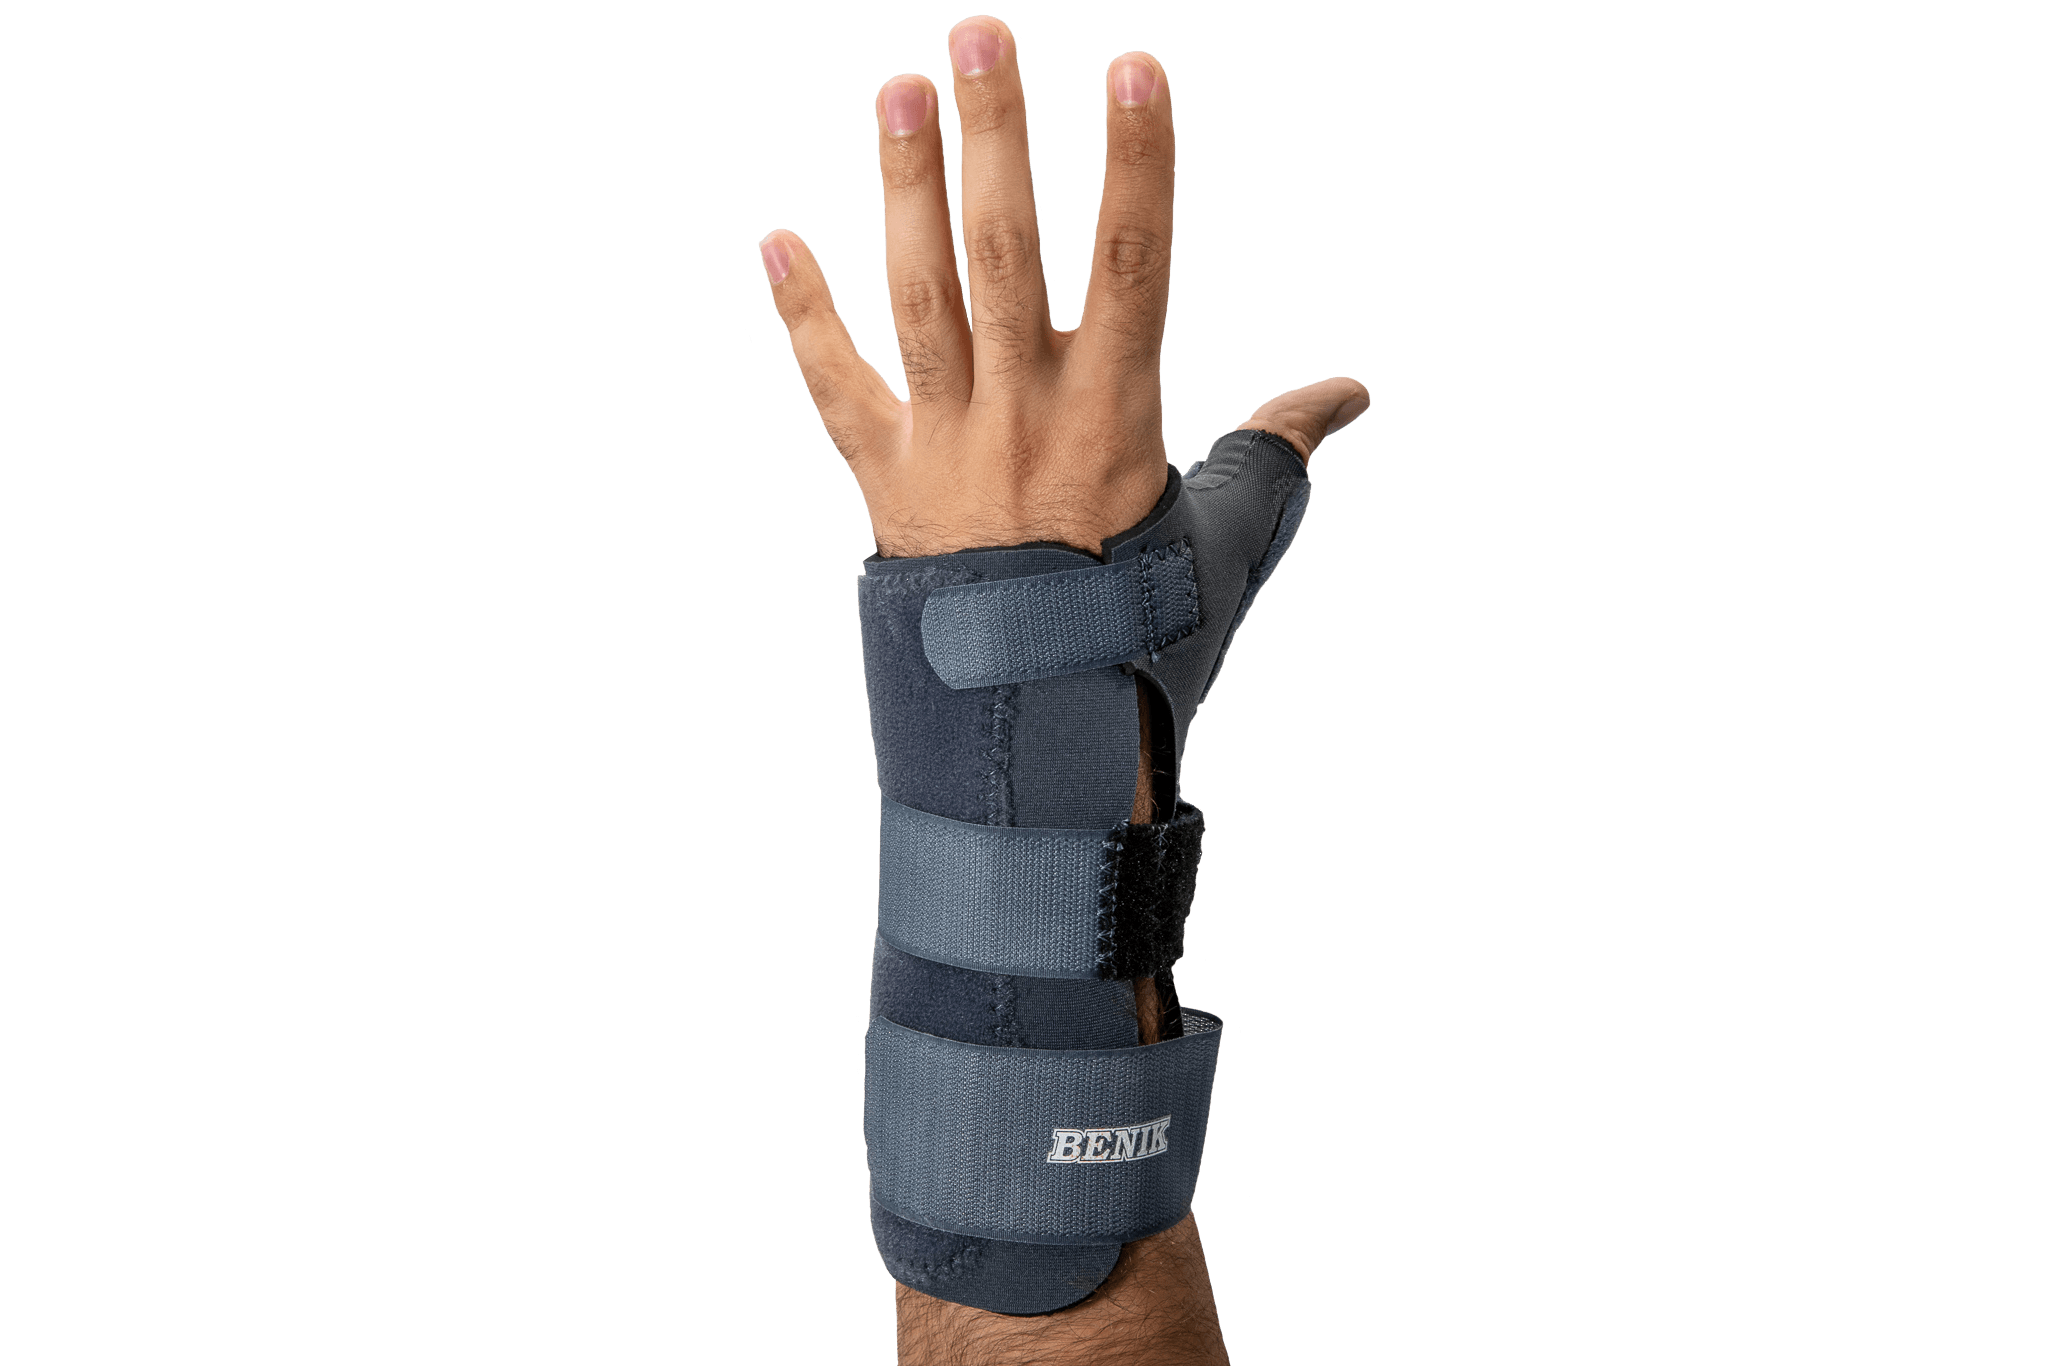 A wrist hand orthotic on someones hand.